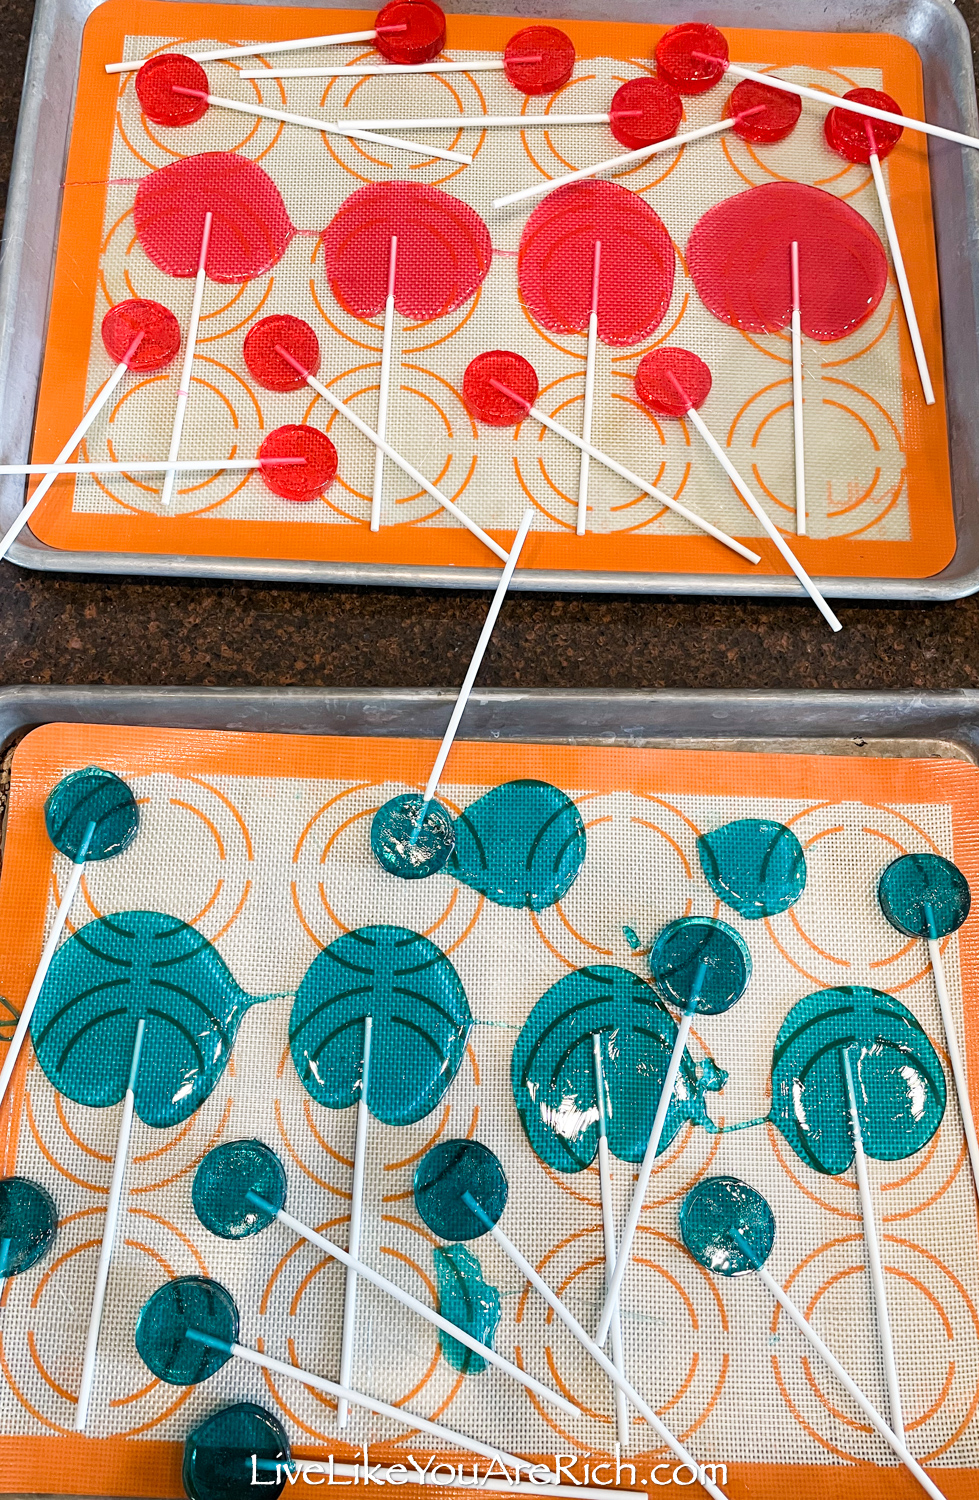 lollipops on a silicon mold